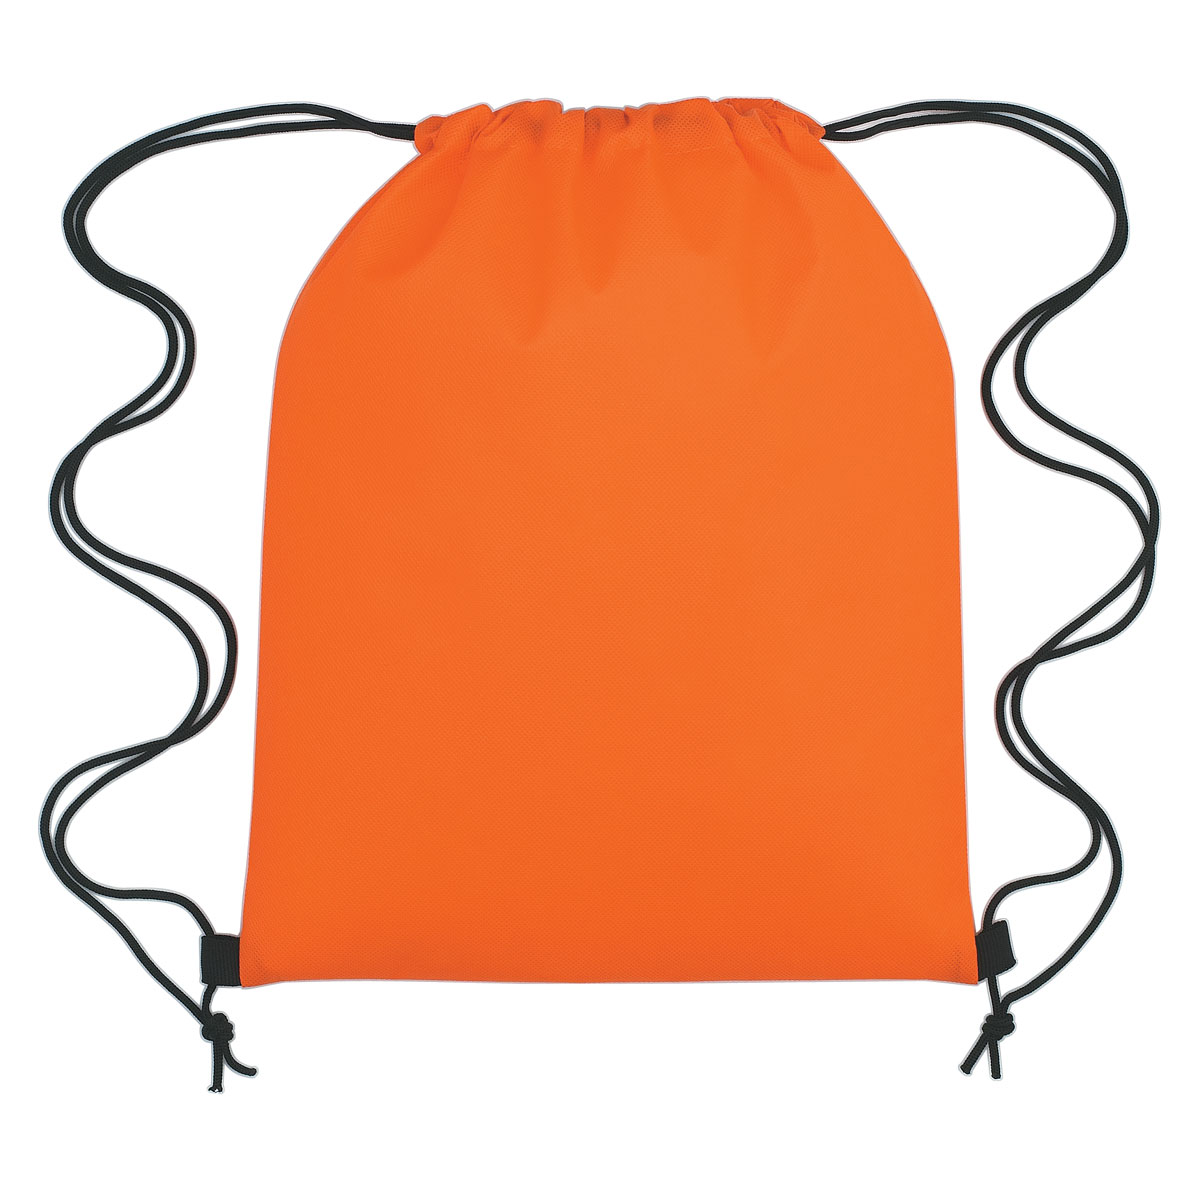 Drawstring bag clipart 3 » Clipart Station.